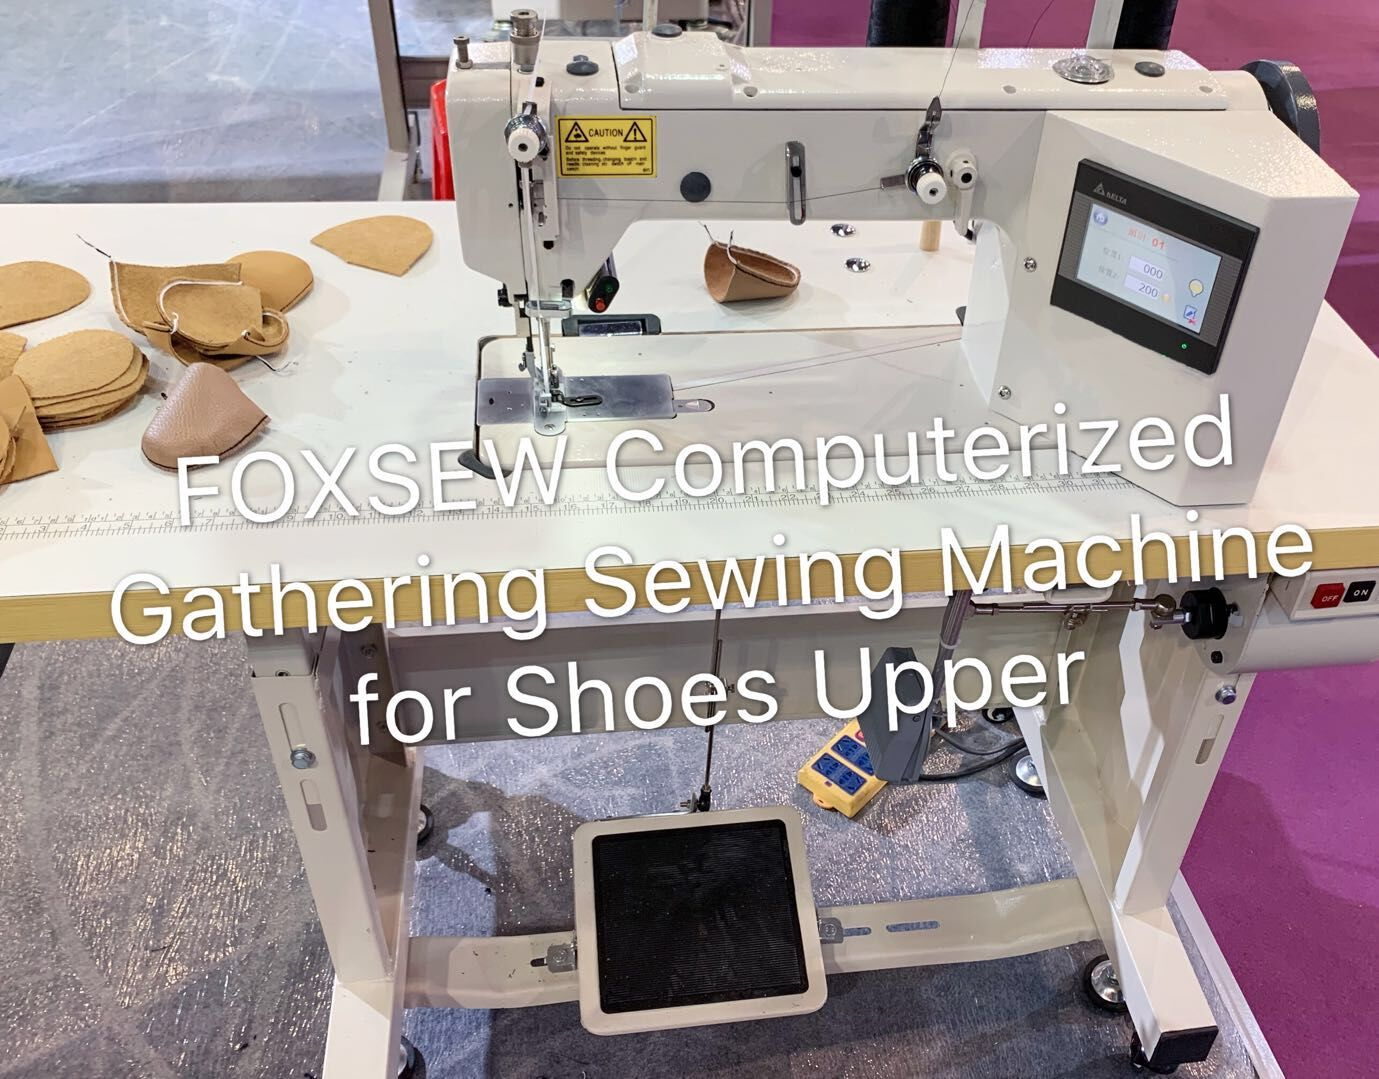 FOXSEW Computerized Gathering sewing machine for shoes Upper